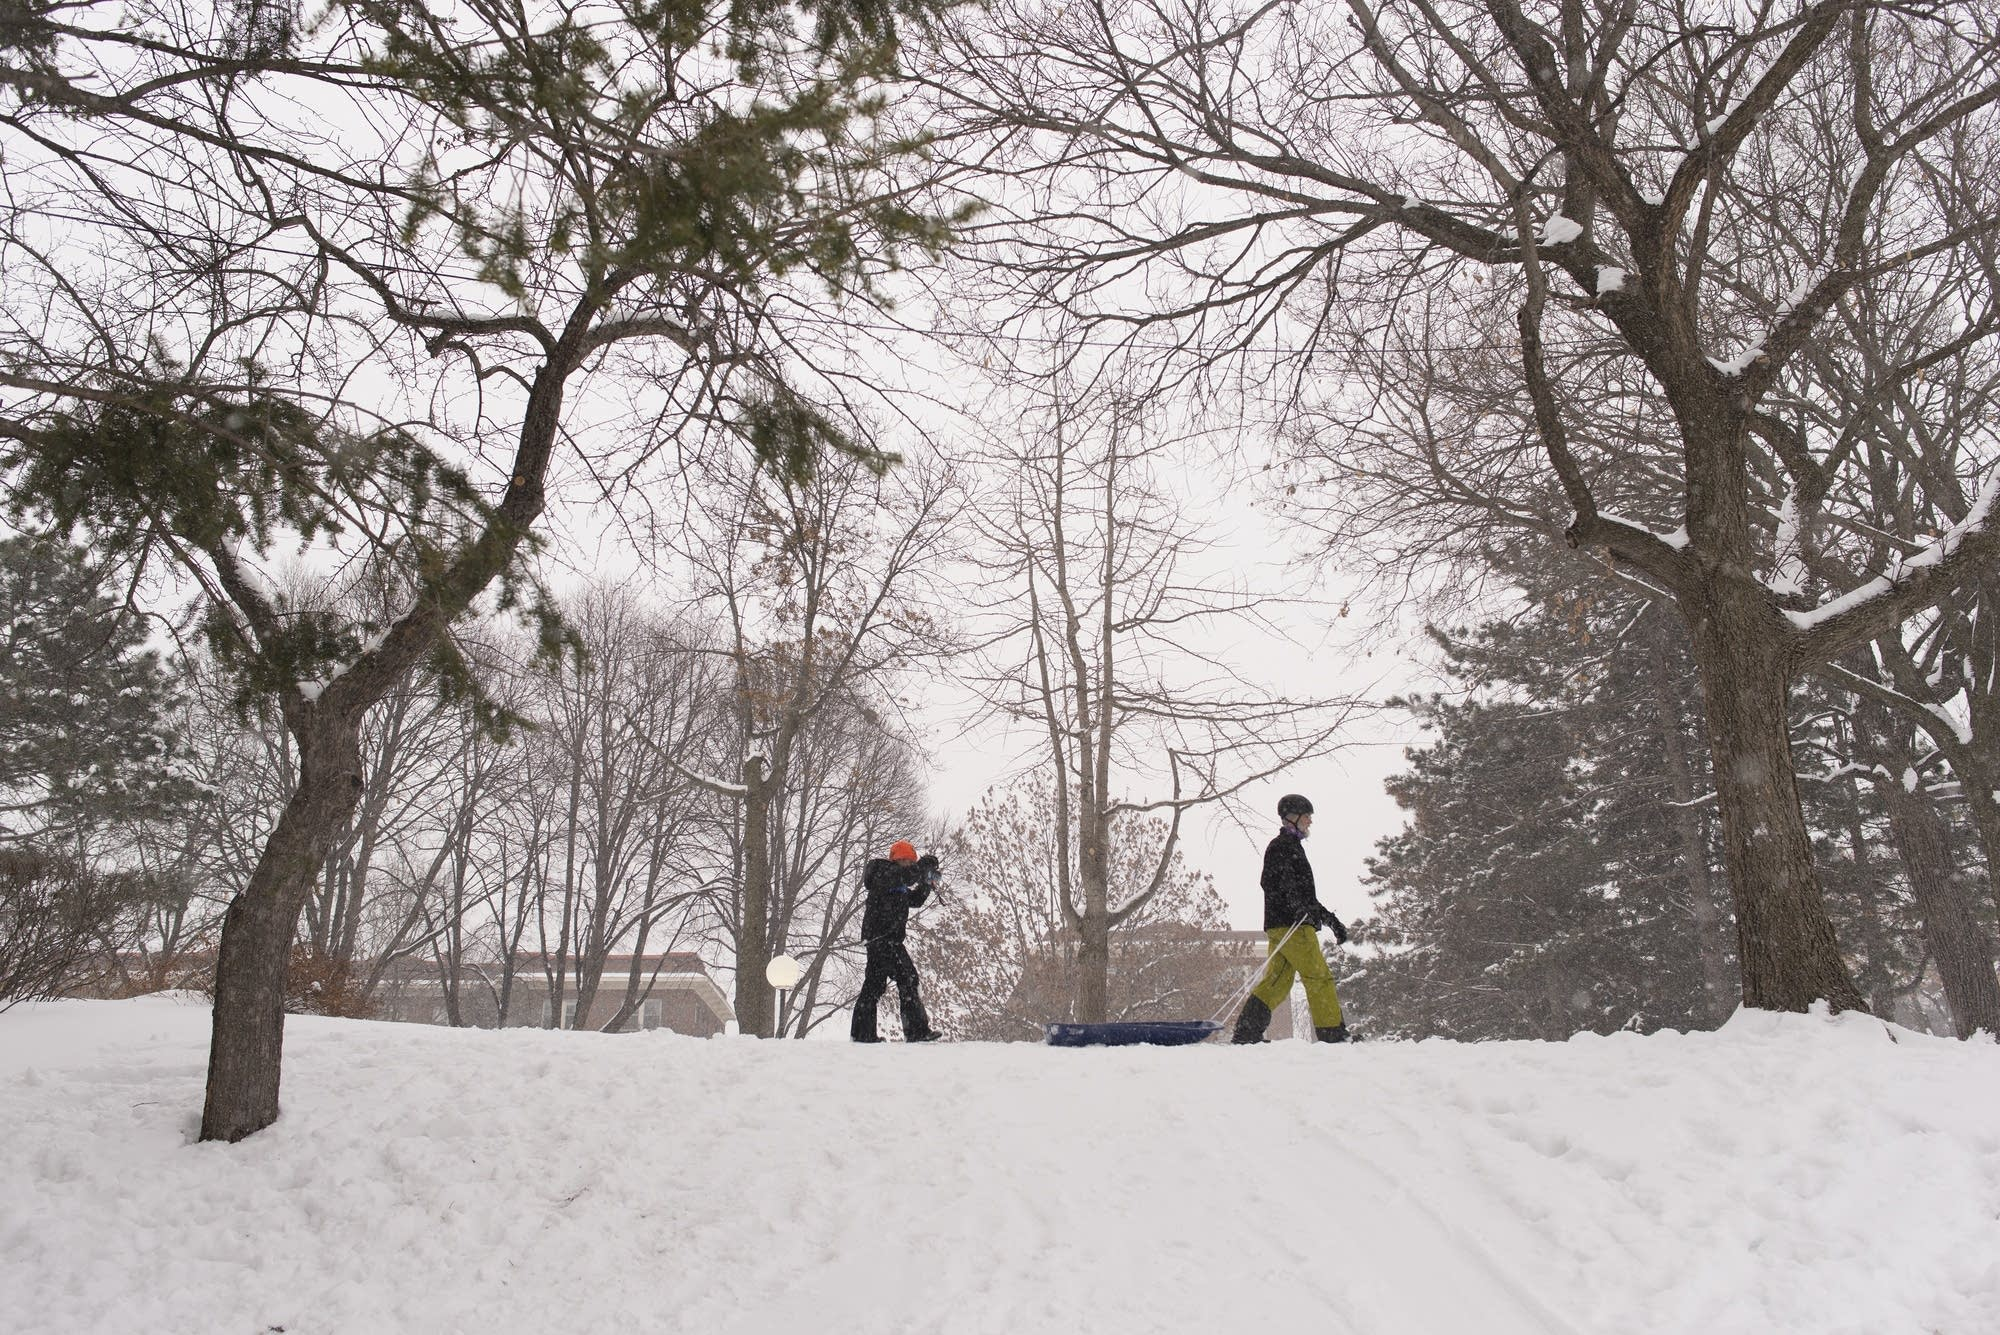 Mark Lutterman and his son John walk across the top of a sledding hill.